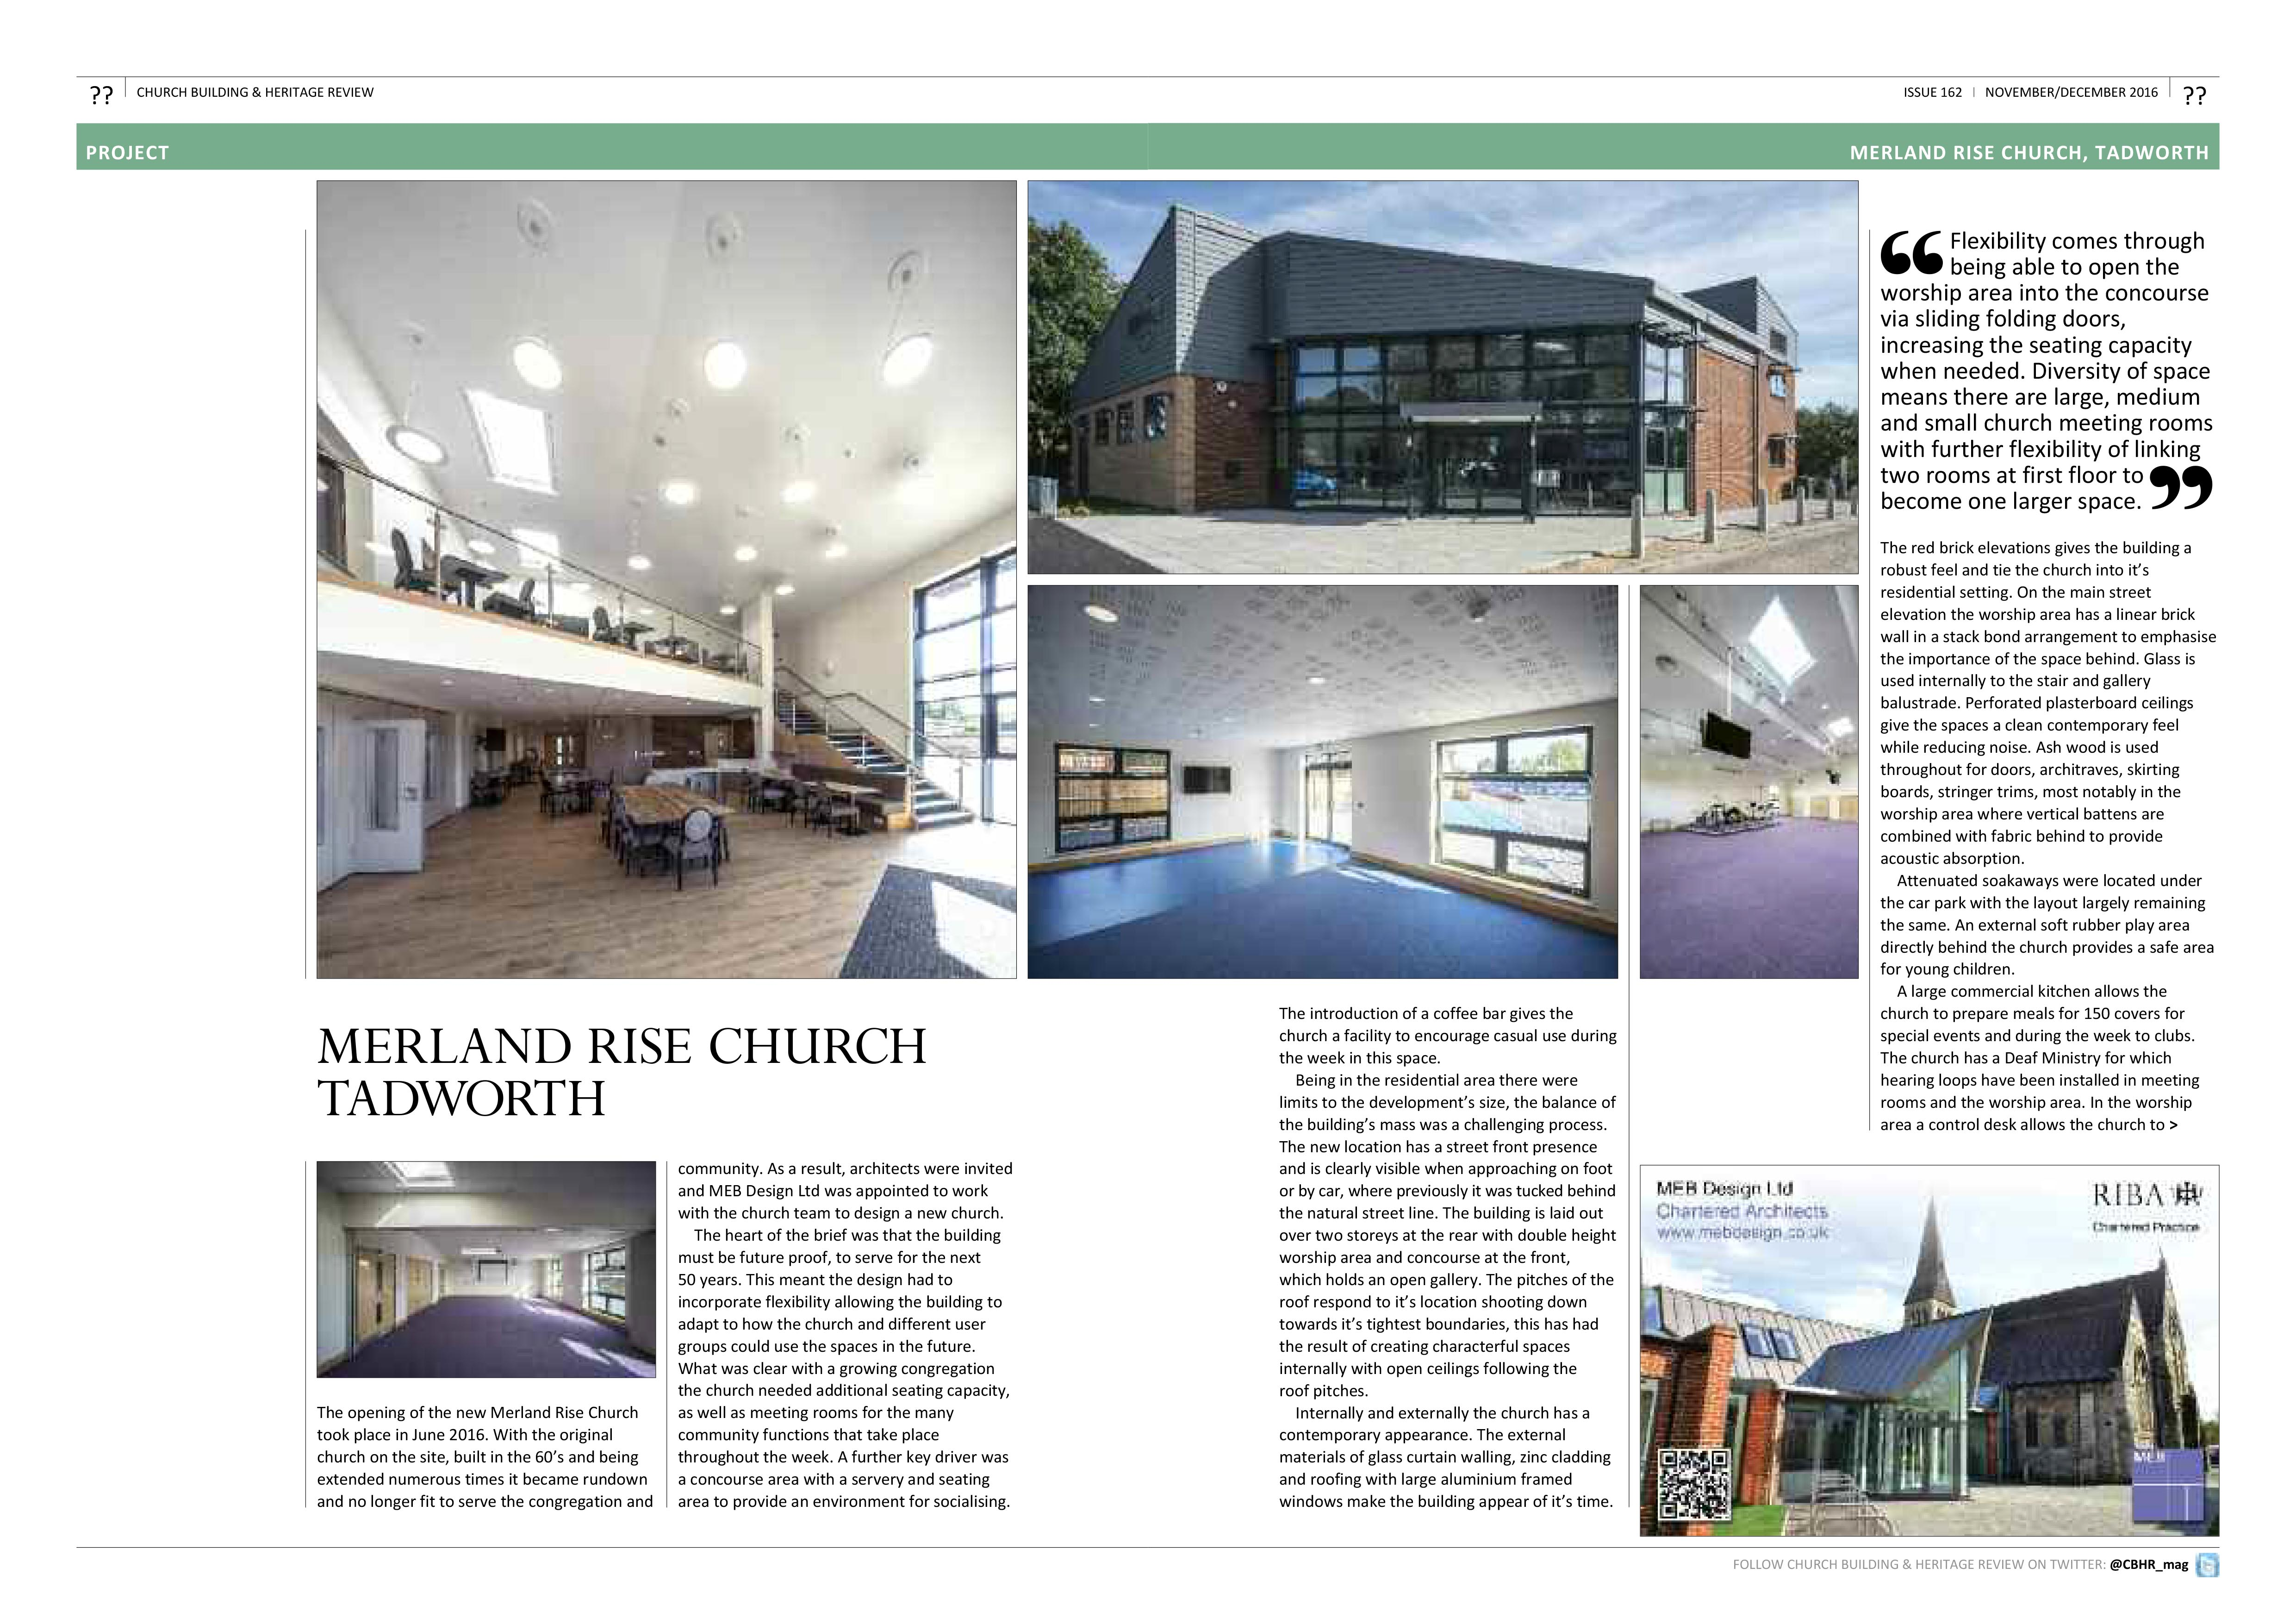 CHURCH BUILDING & HERITAGE REVIEW – MERLAND RISE CHURCH - MEB Design